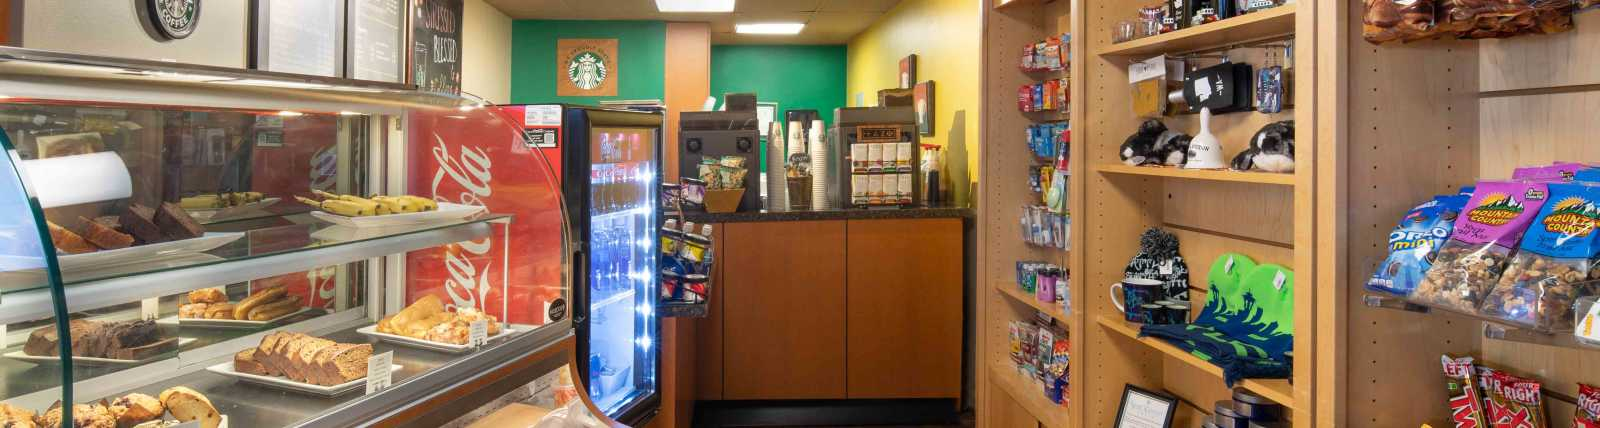 Cafe featuring Starbucks